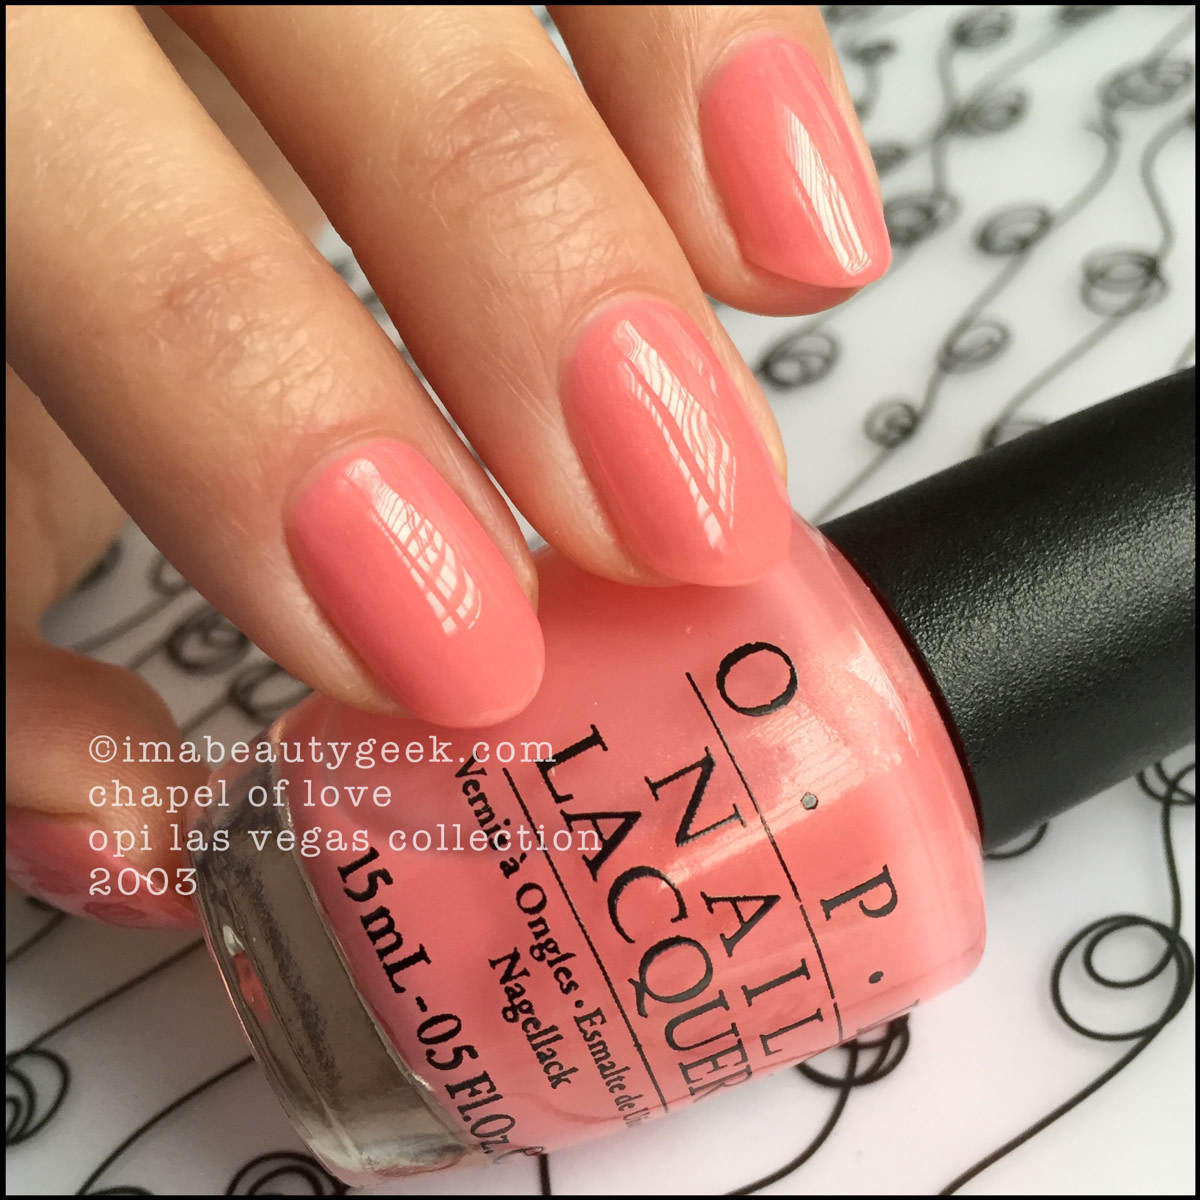 OPI Chapel of Love Swatch_OPI Las Vegas Collection 2003